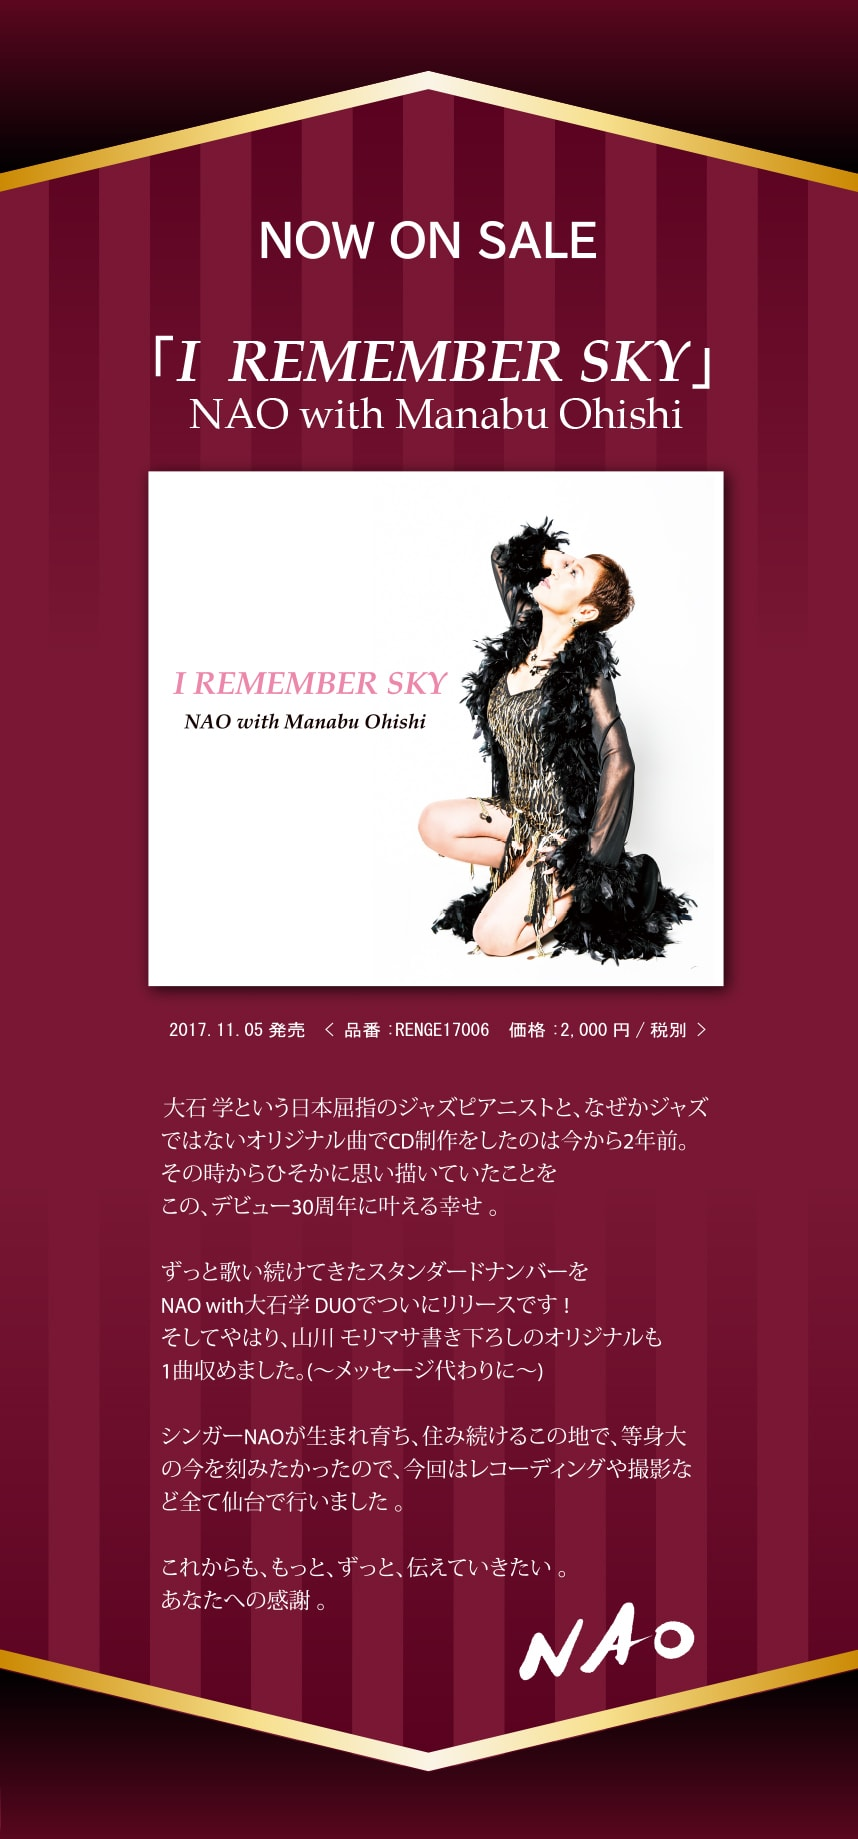 NOW ON SALE「I REMEMBER SKY」2017.11.15 発売